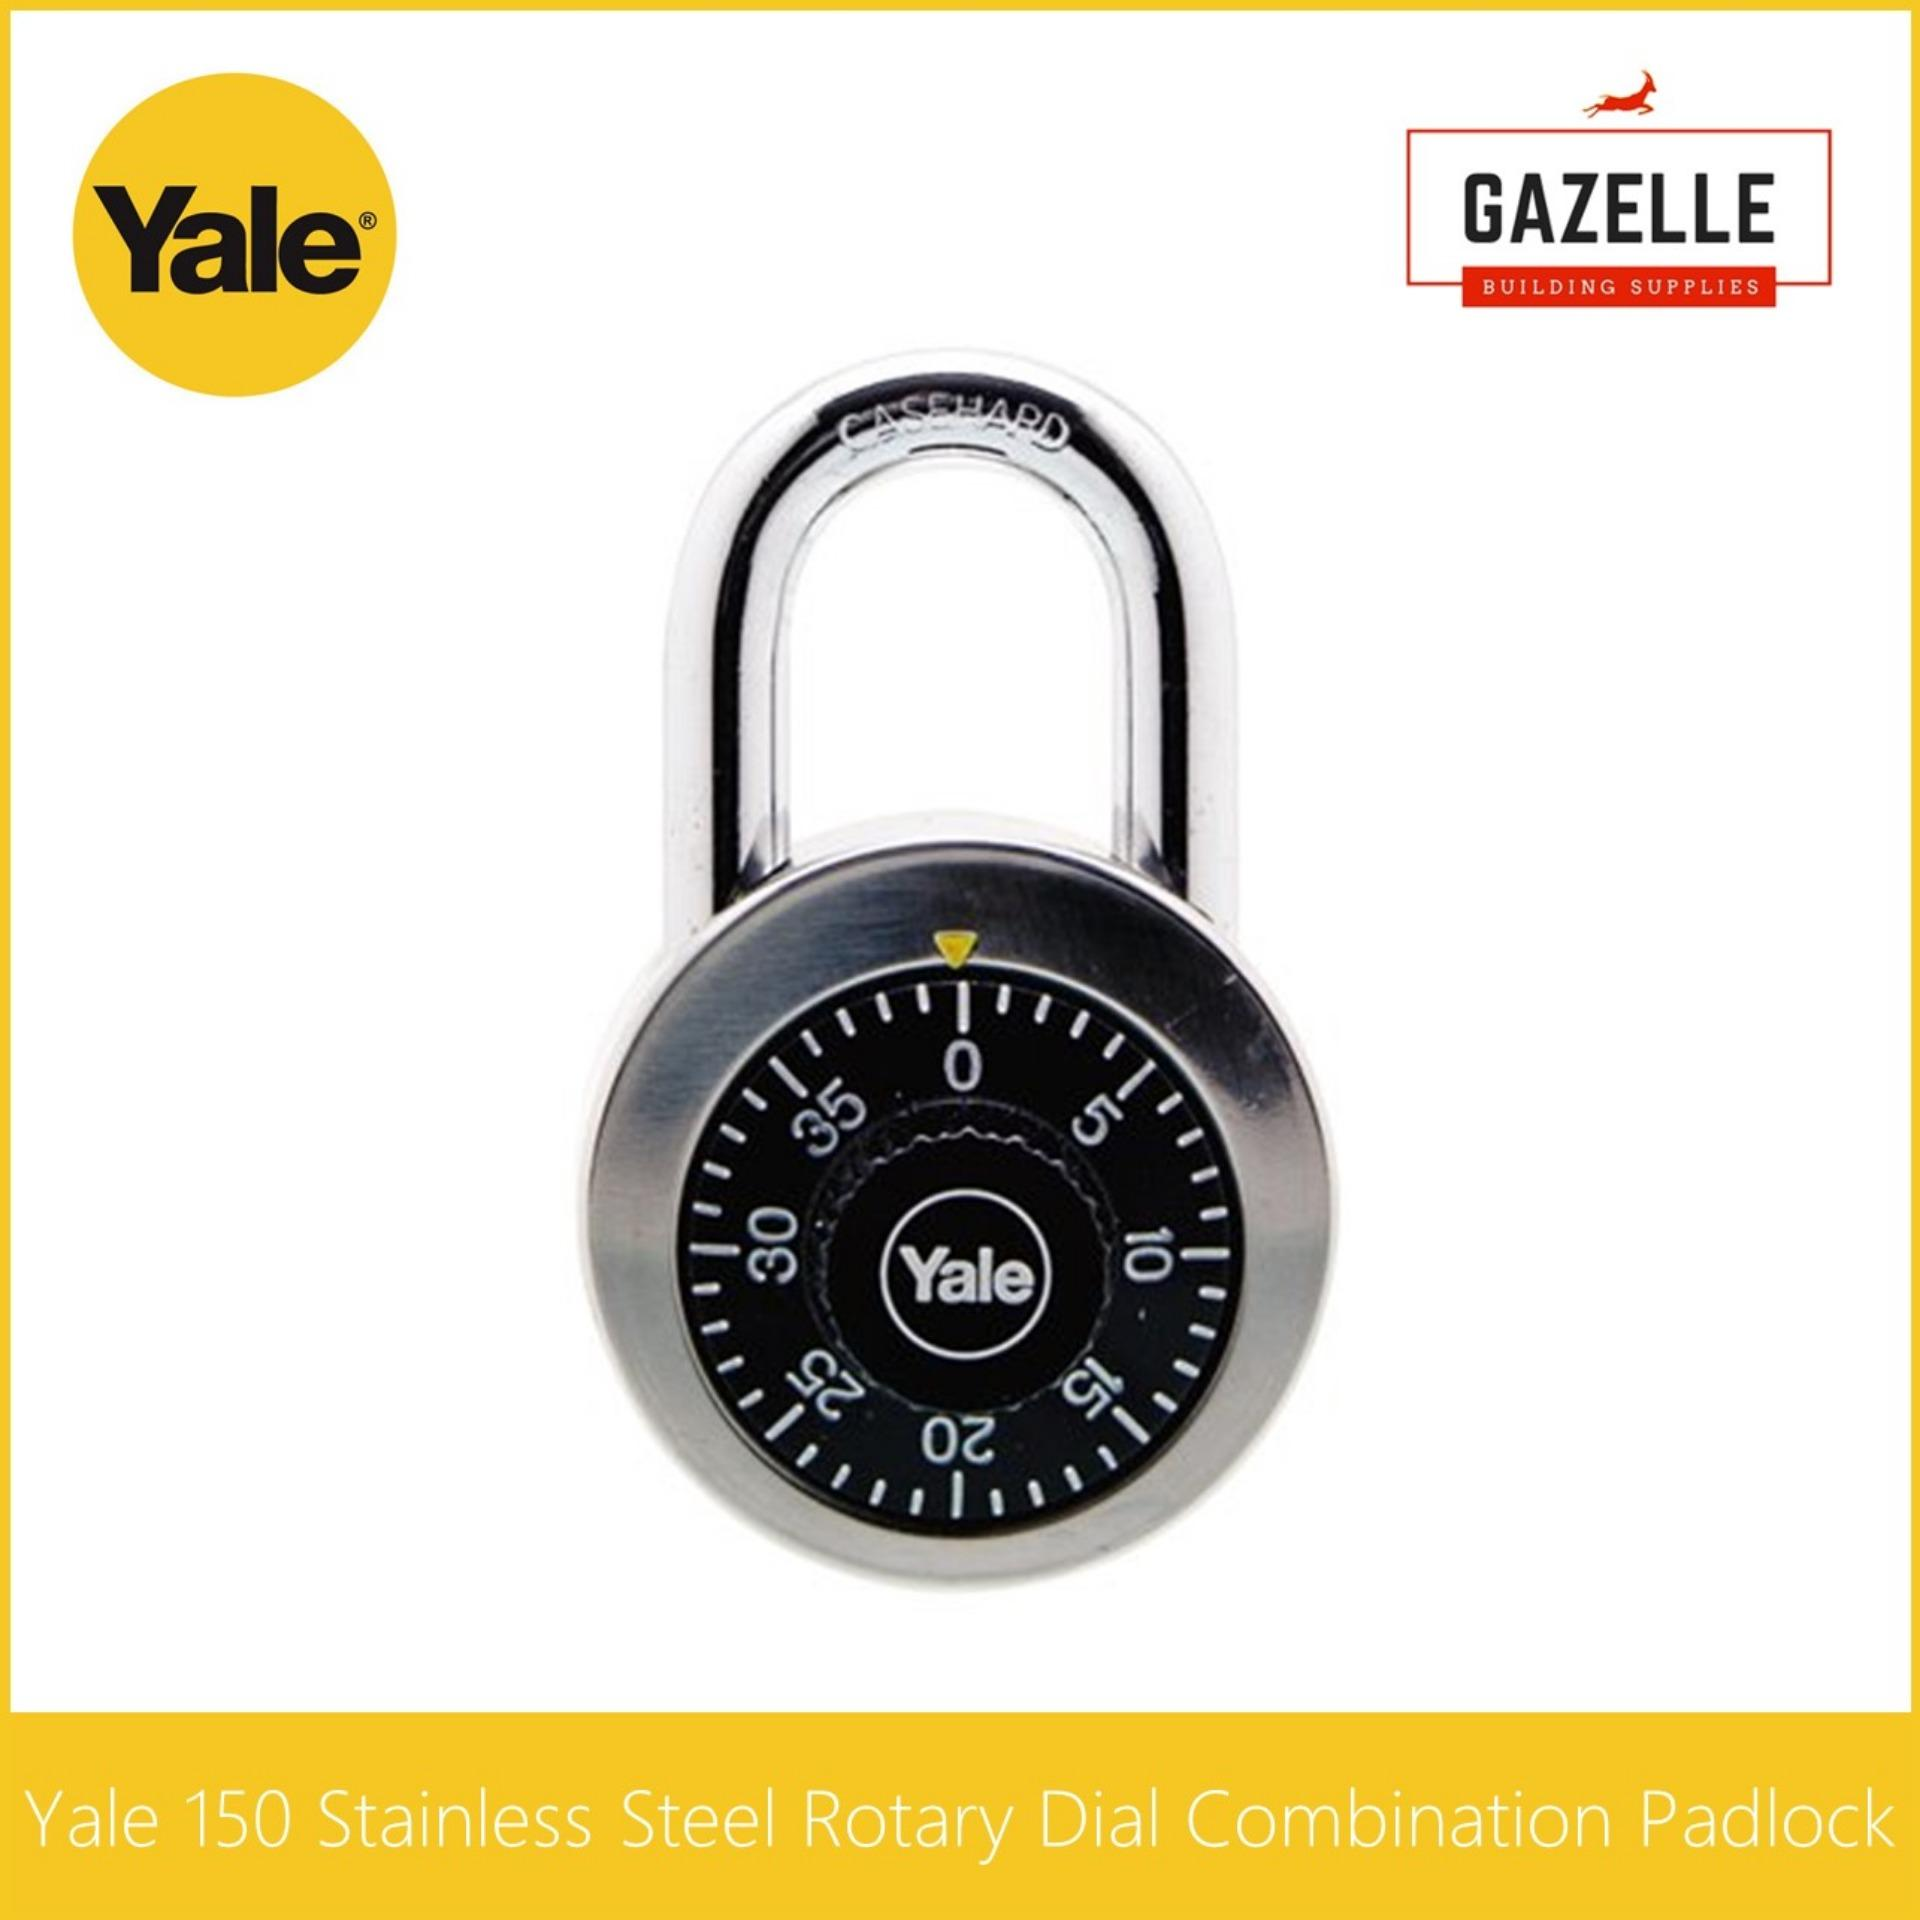 Yale 140 Stainless Steel Rotary Dial Combination Padlock